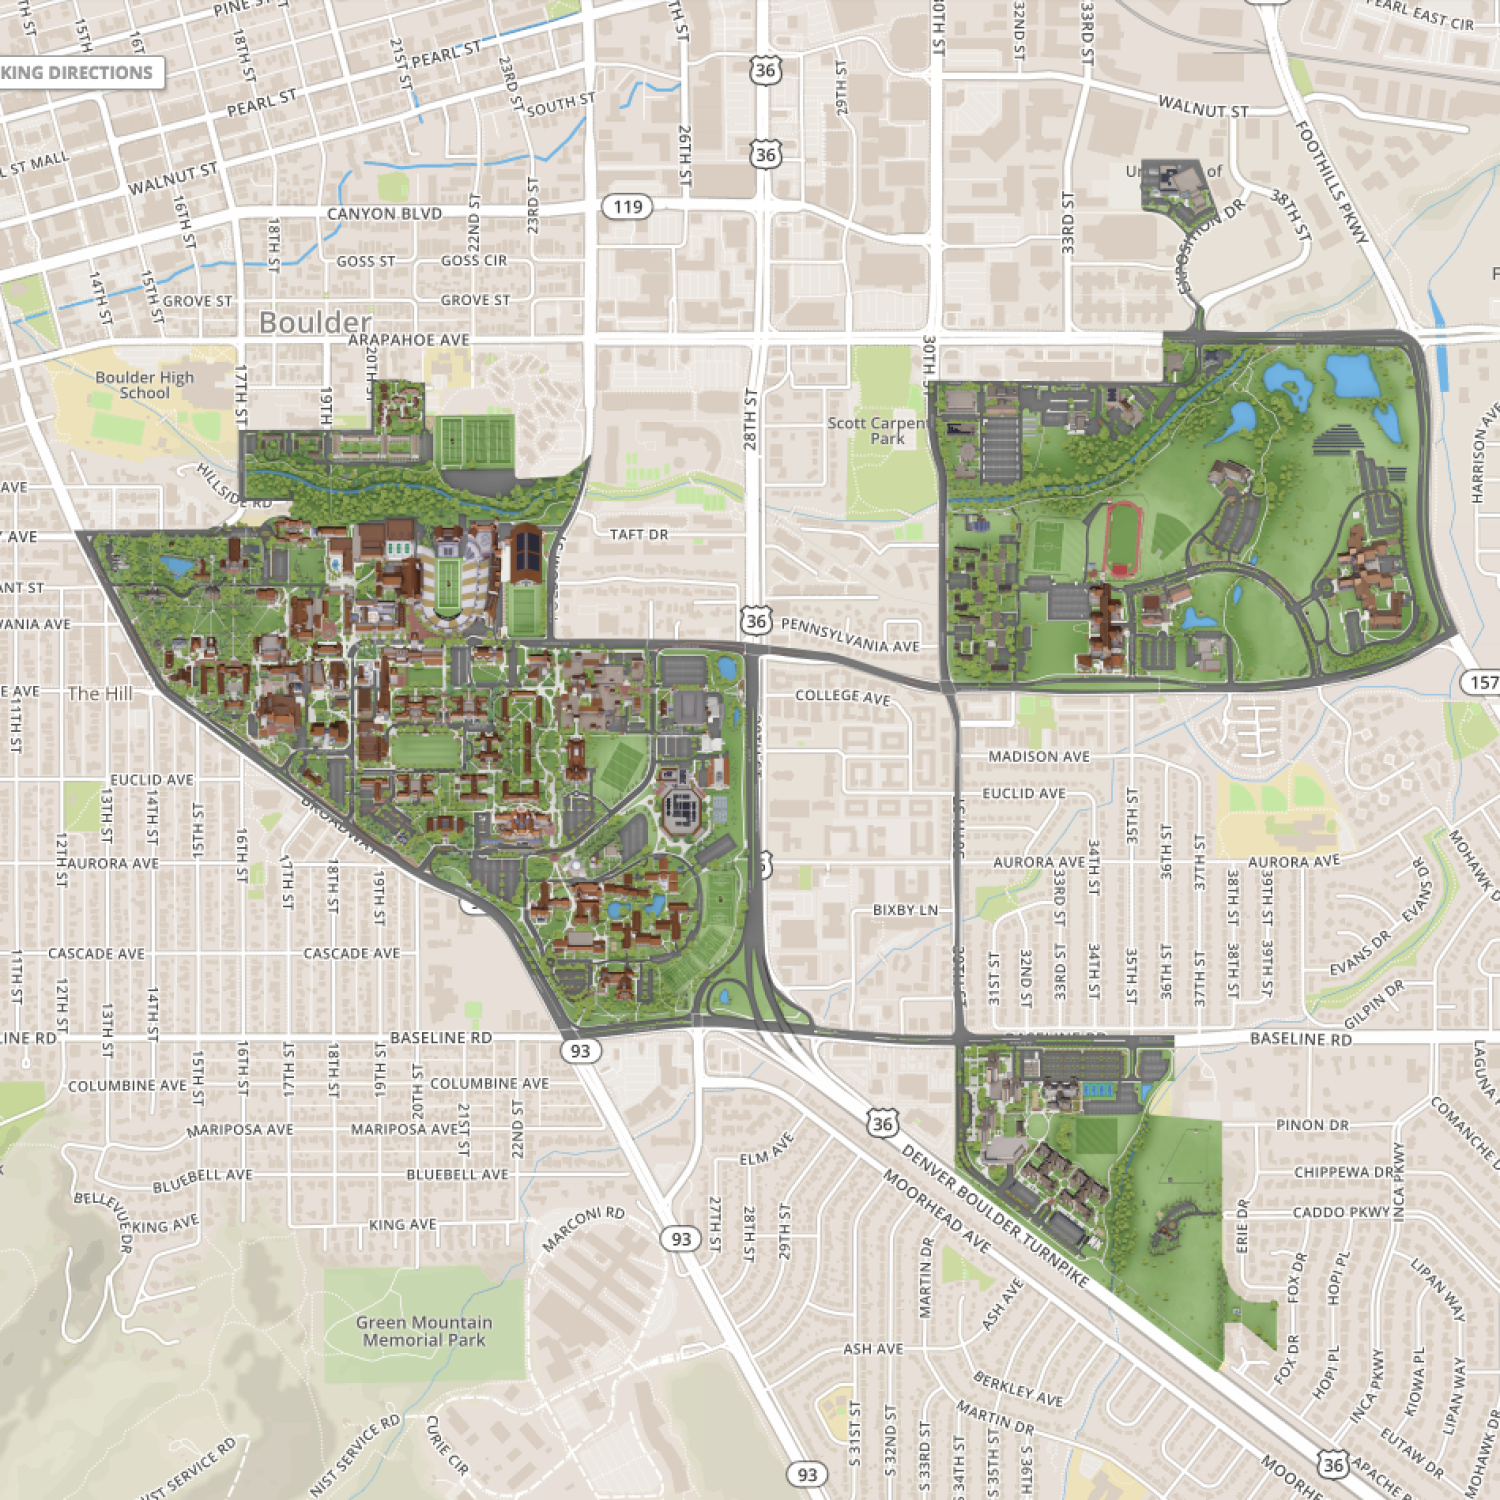 the new campus map includes main campus east campus williams village andbeyond. new campus map takes wayfinding to the next level  cu boulder